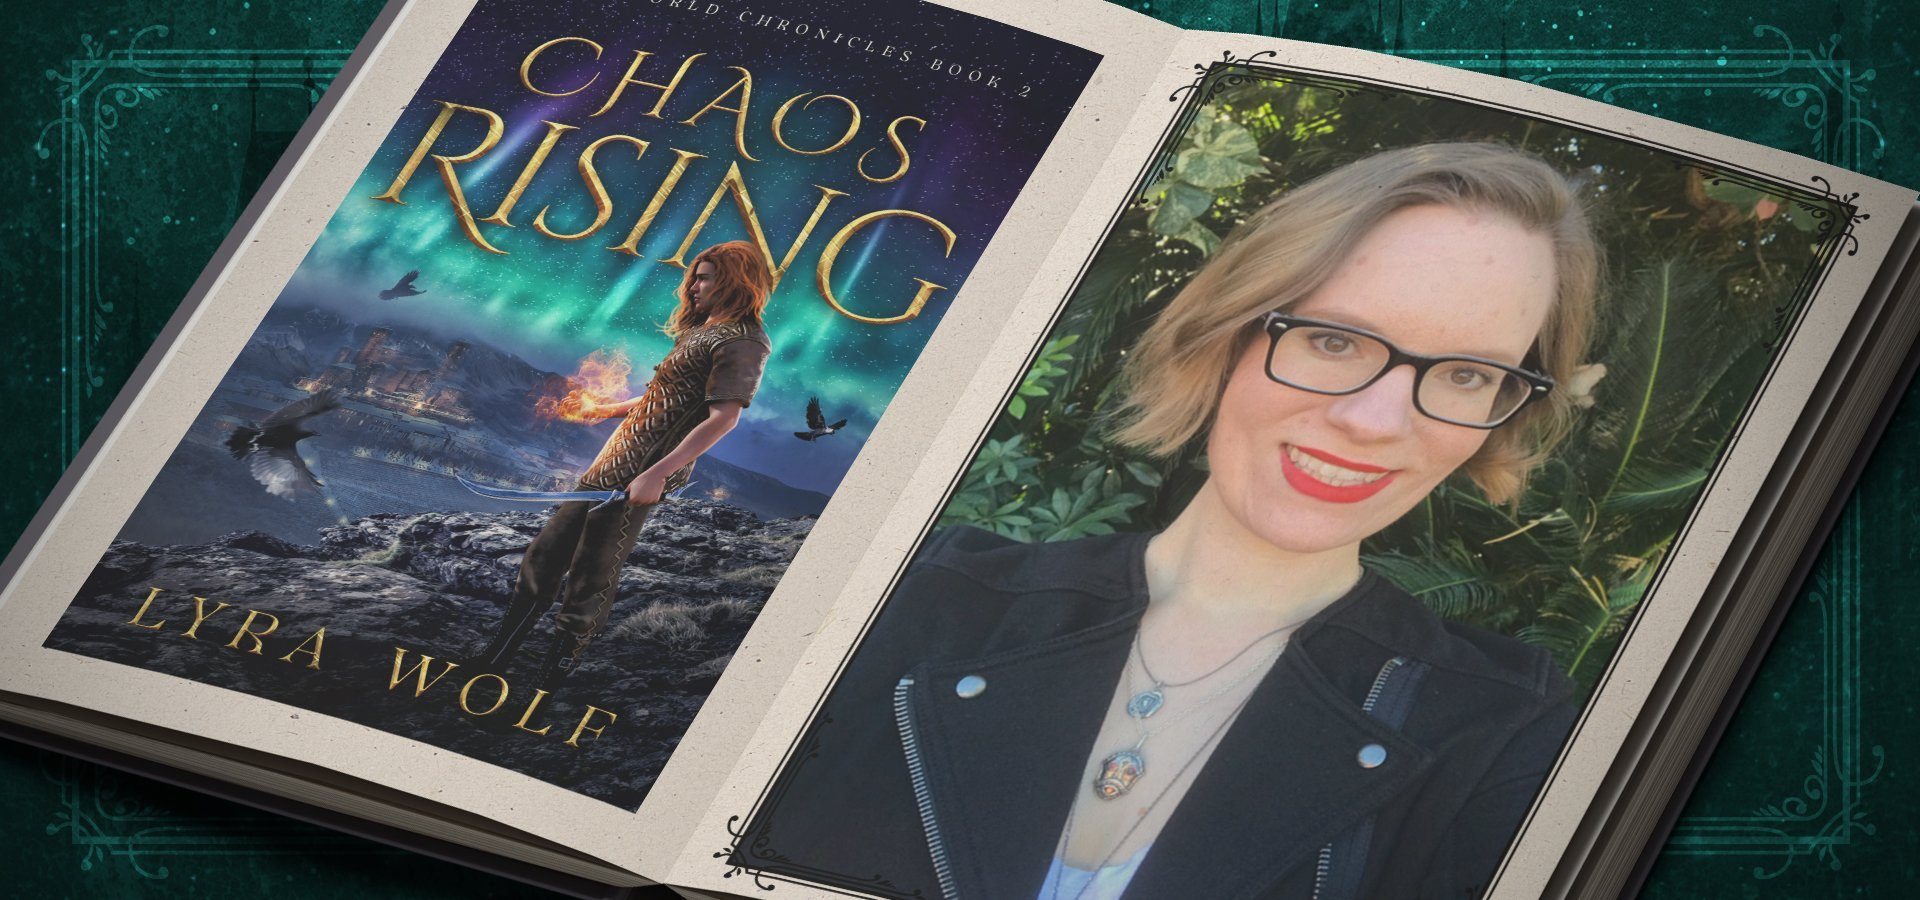 Chaos Rising by Lyra Wolf